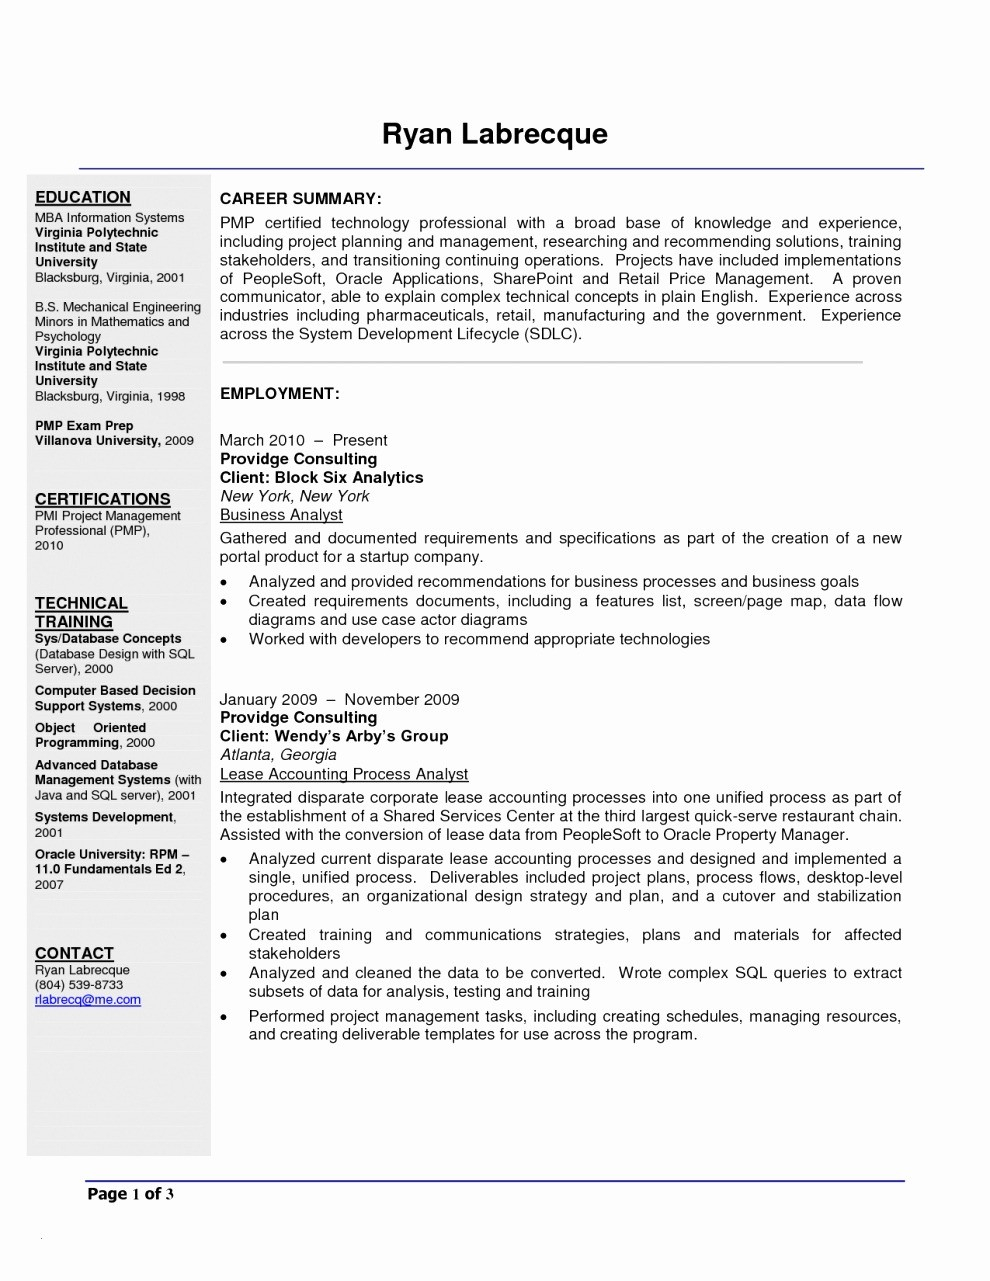 Leasing Consultant Resume Example - Leasing Agent Resume Best Leasing Consultant Resume Objective New